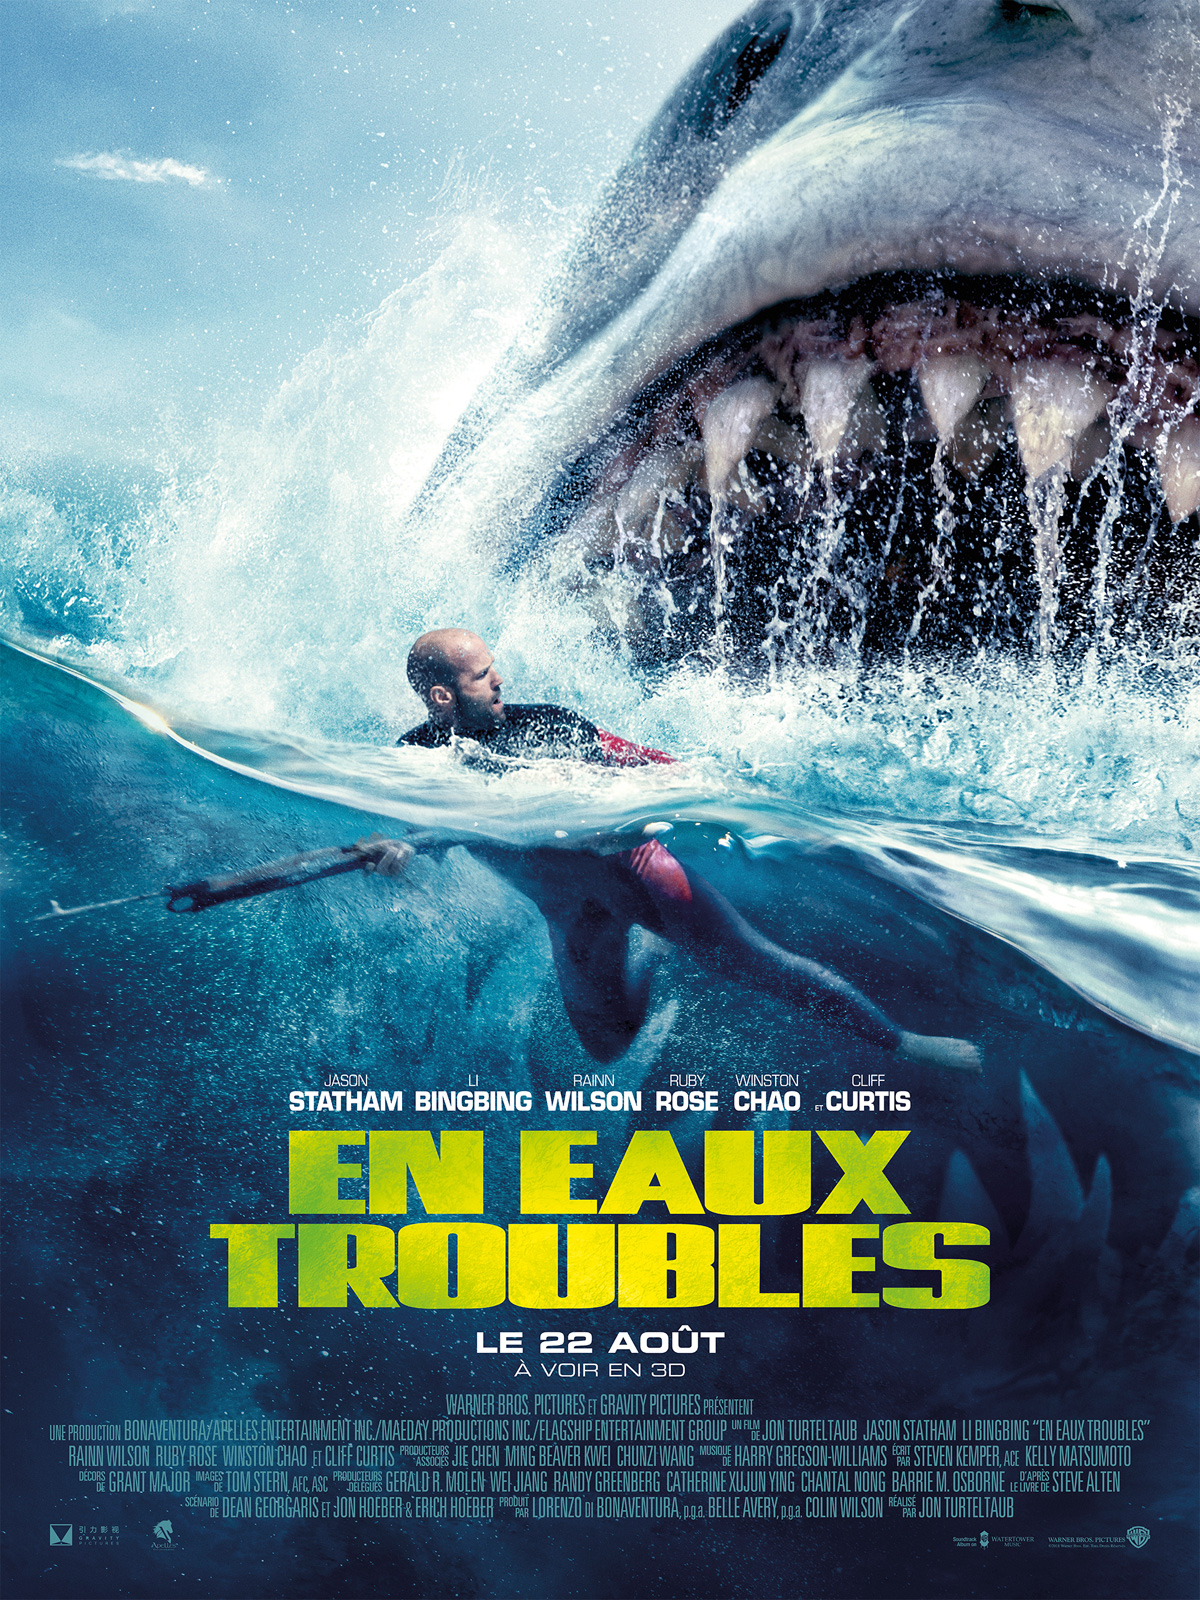 En eaux troubles 2018 HDCAM V2| VO English